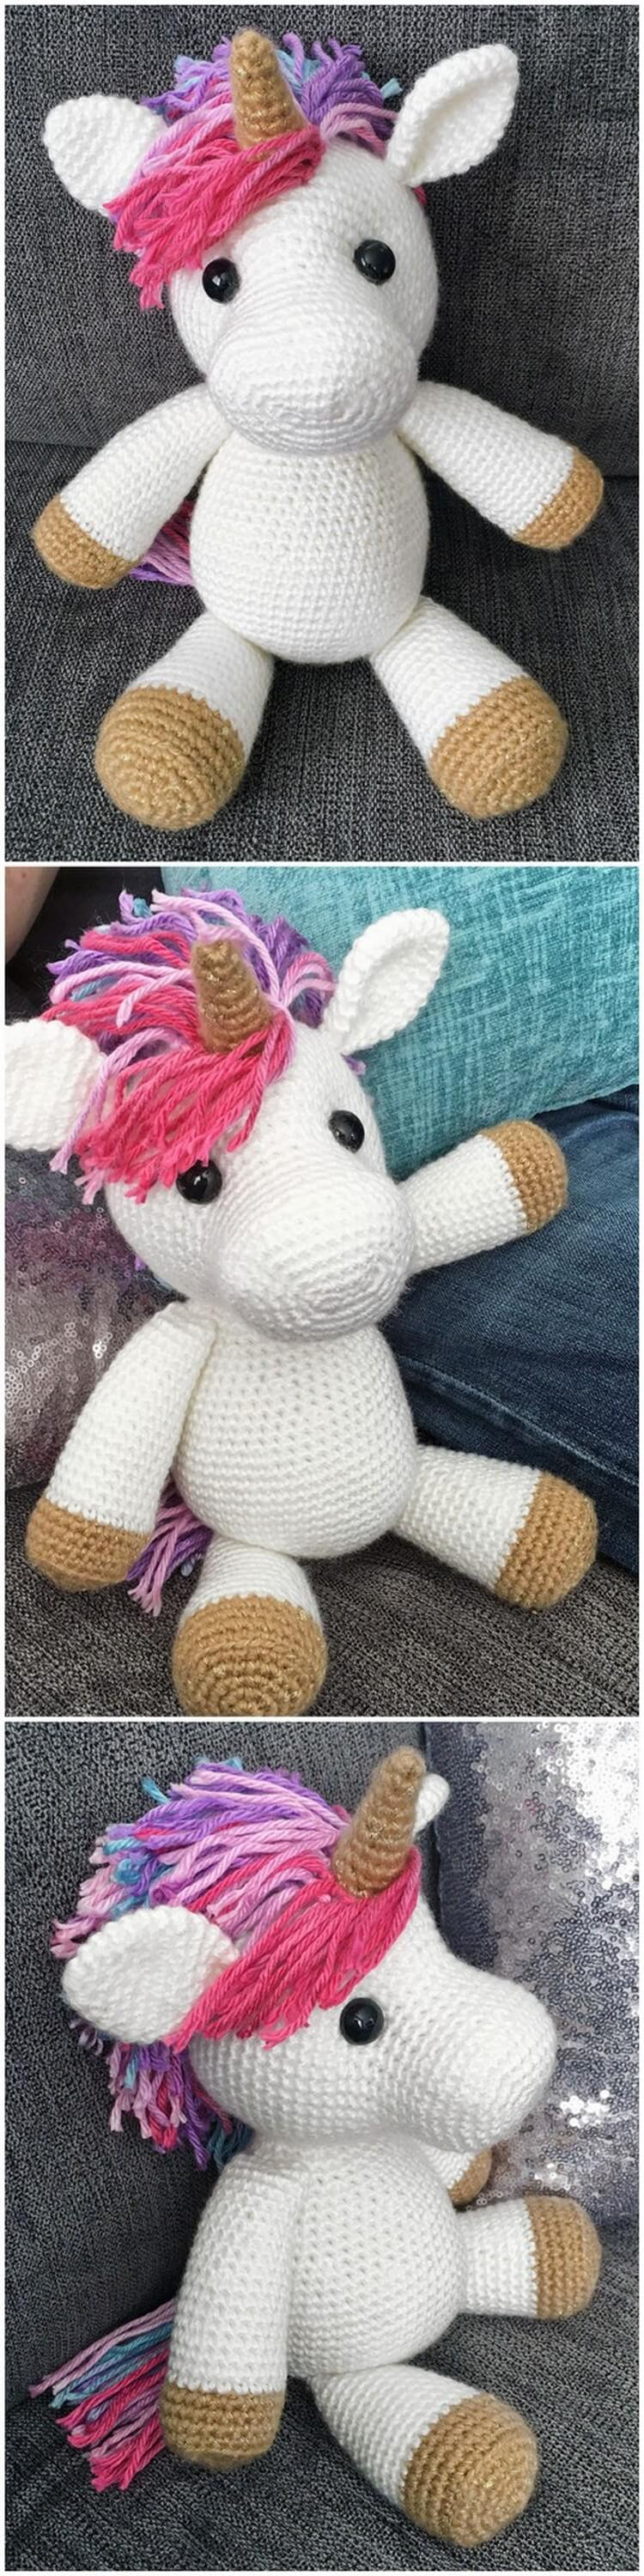 Crochet Unicorn Pattern (28)